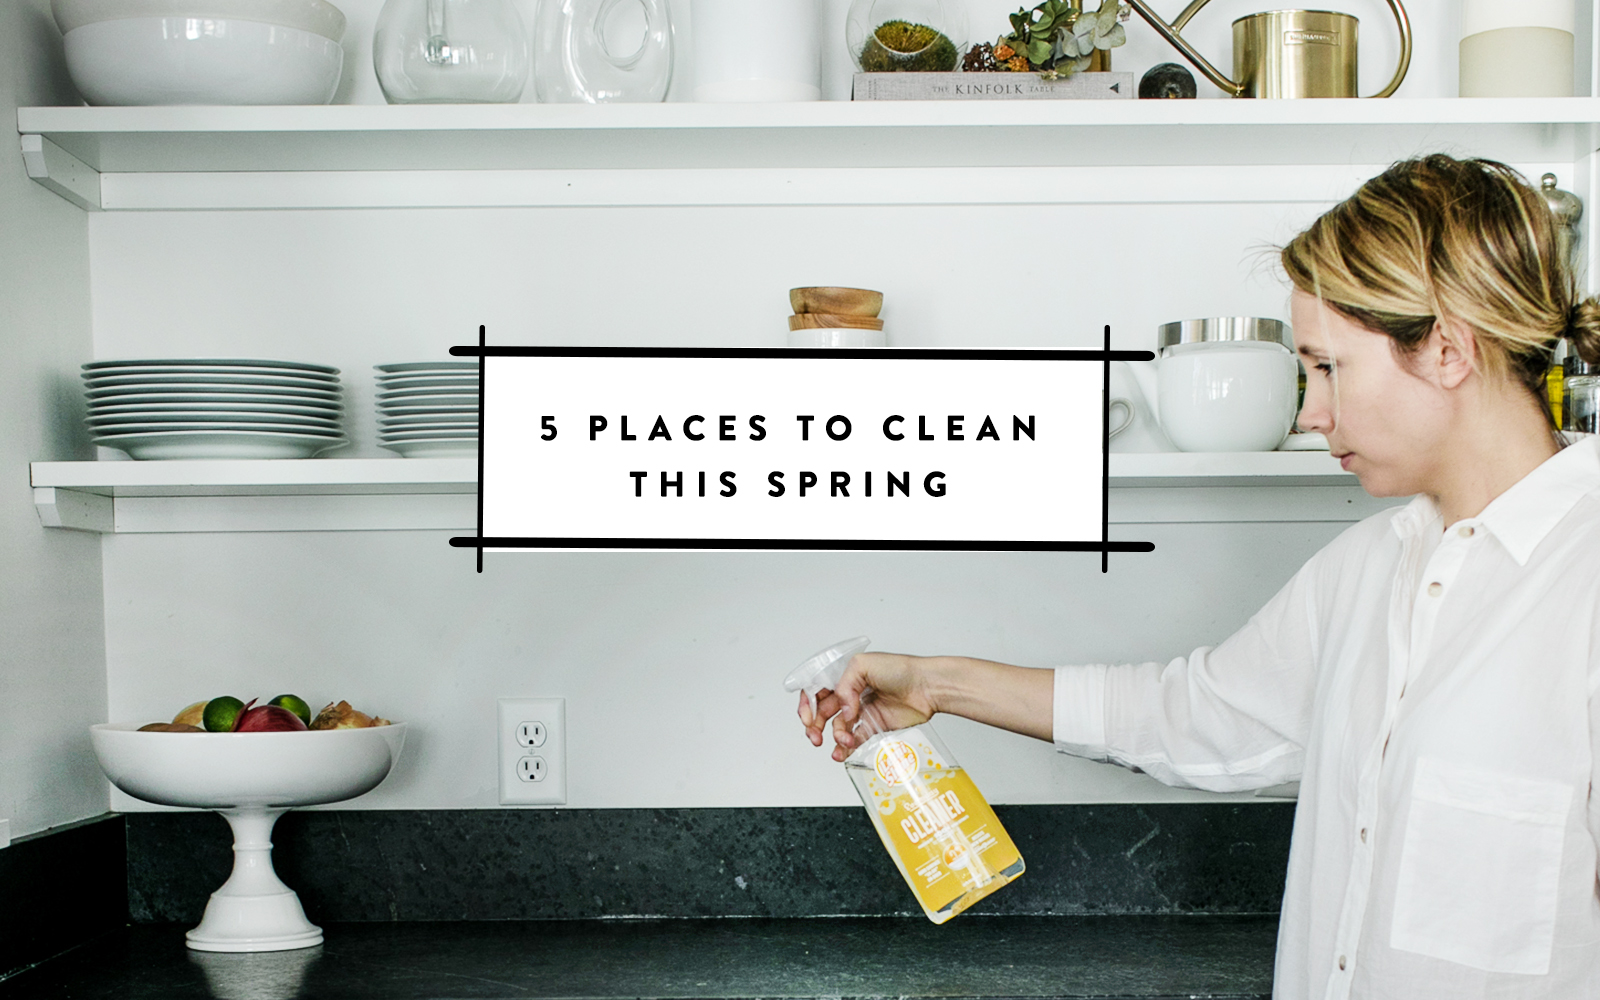 5 places to clean this spring in your home you may not think about. Get all the places on The Fresh Exchange.